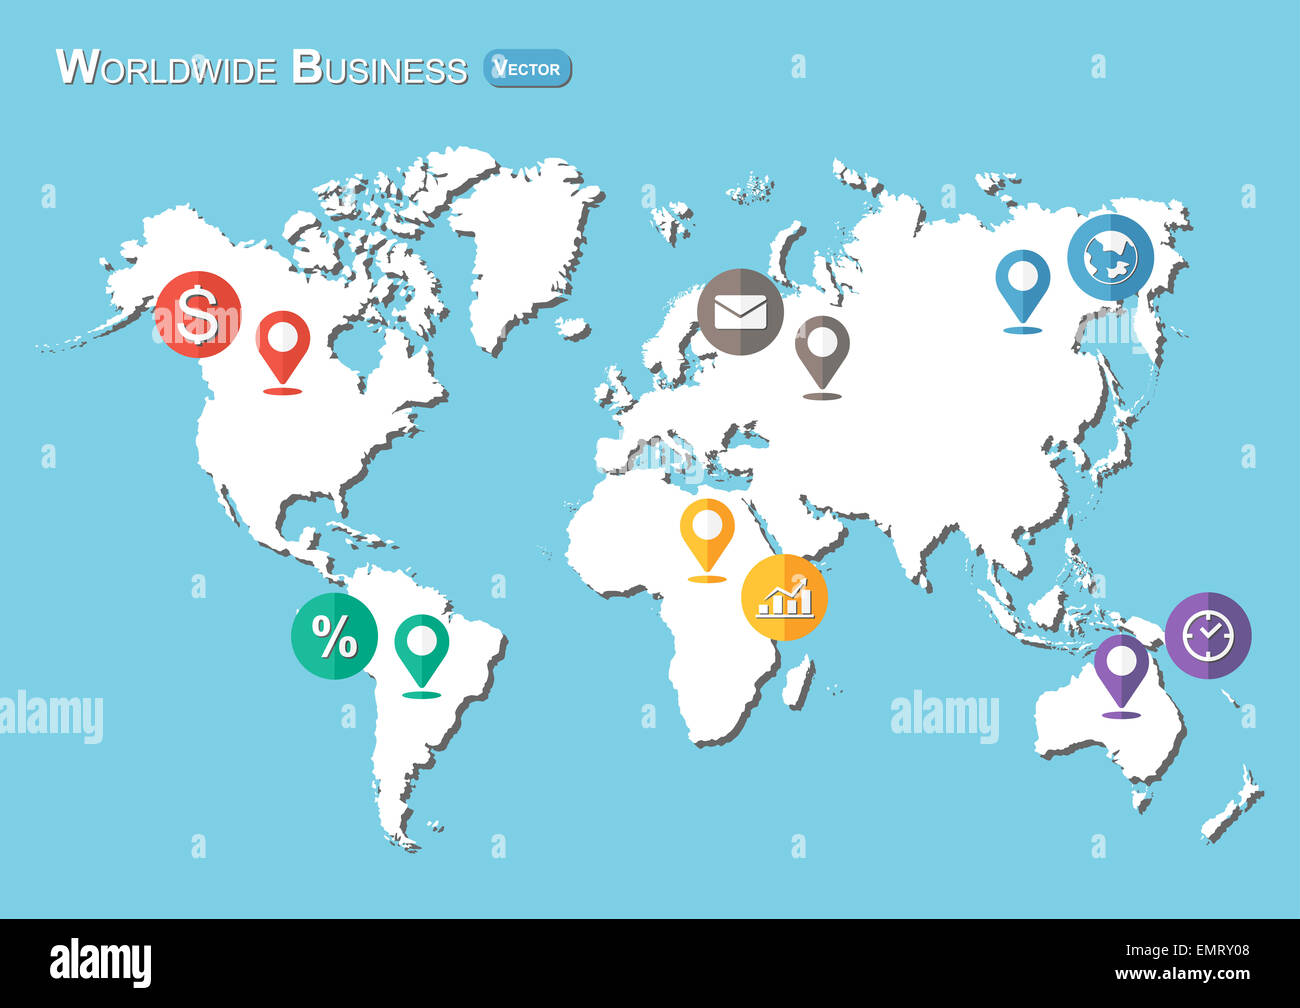 World map with pointers and business icon flat design stock photo world map with pointers and business icon flat design gumiabroncs Gallery